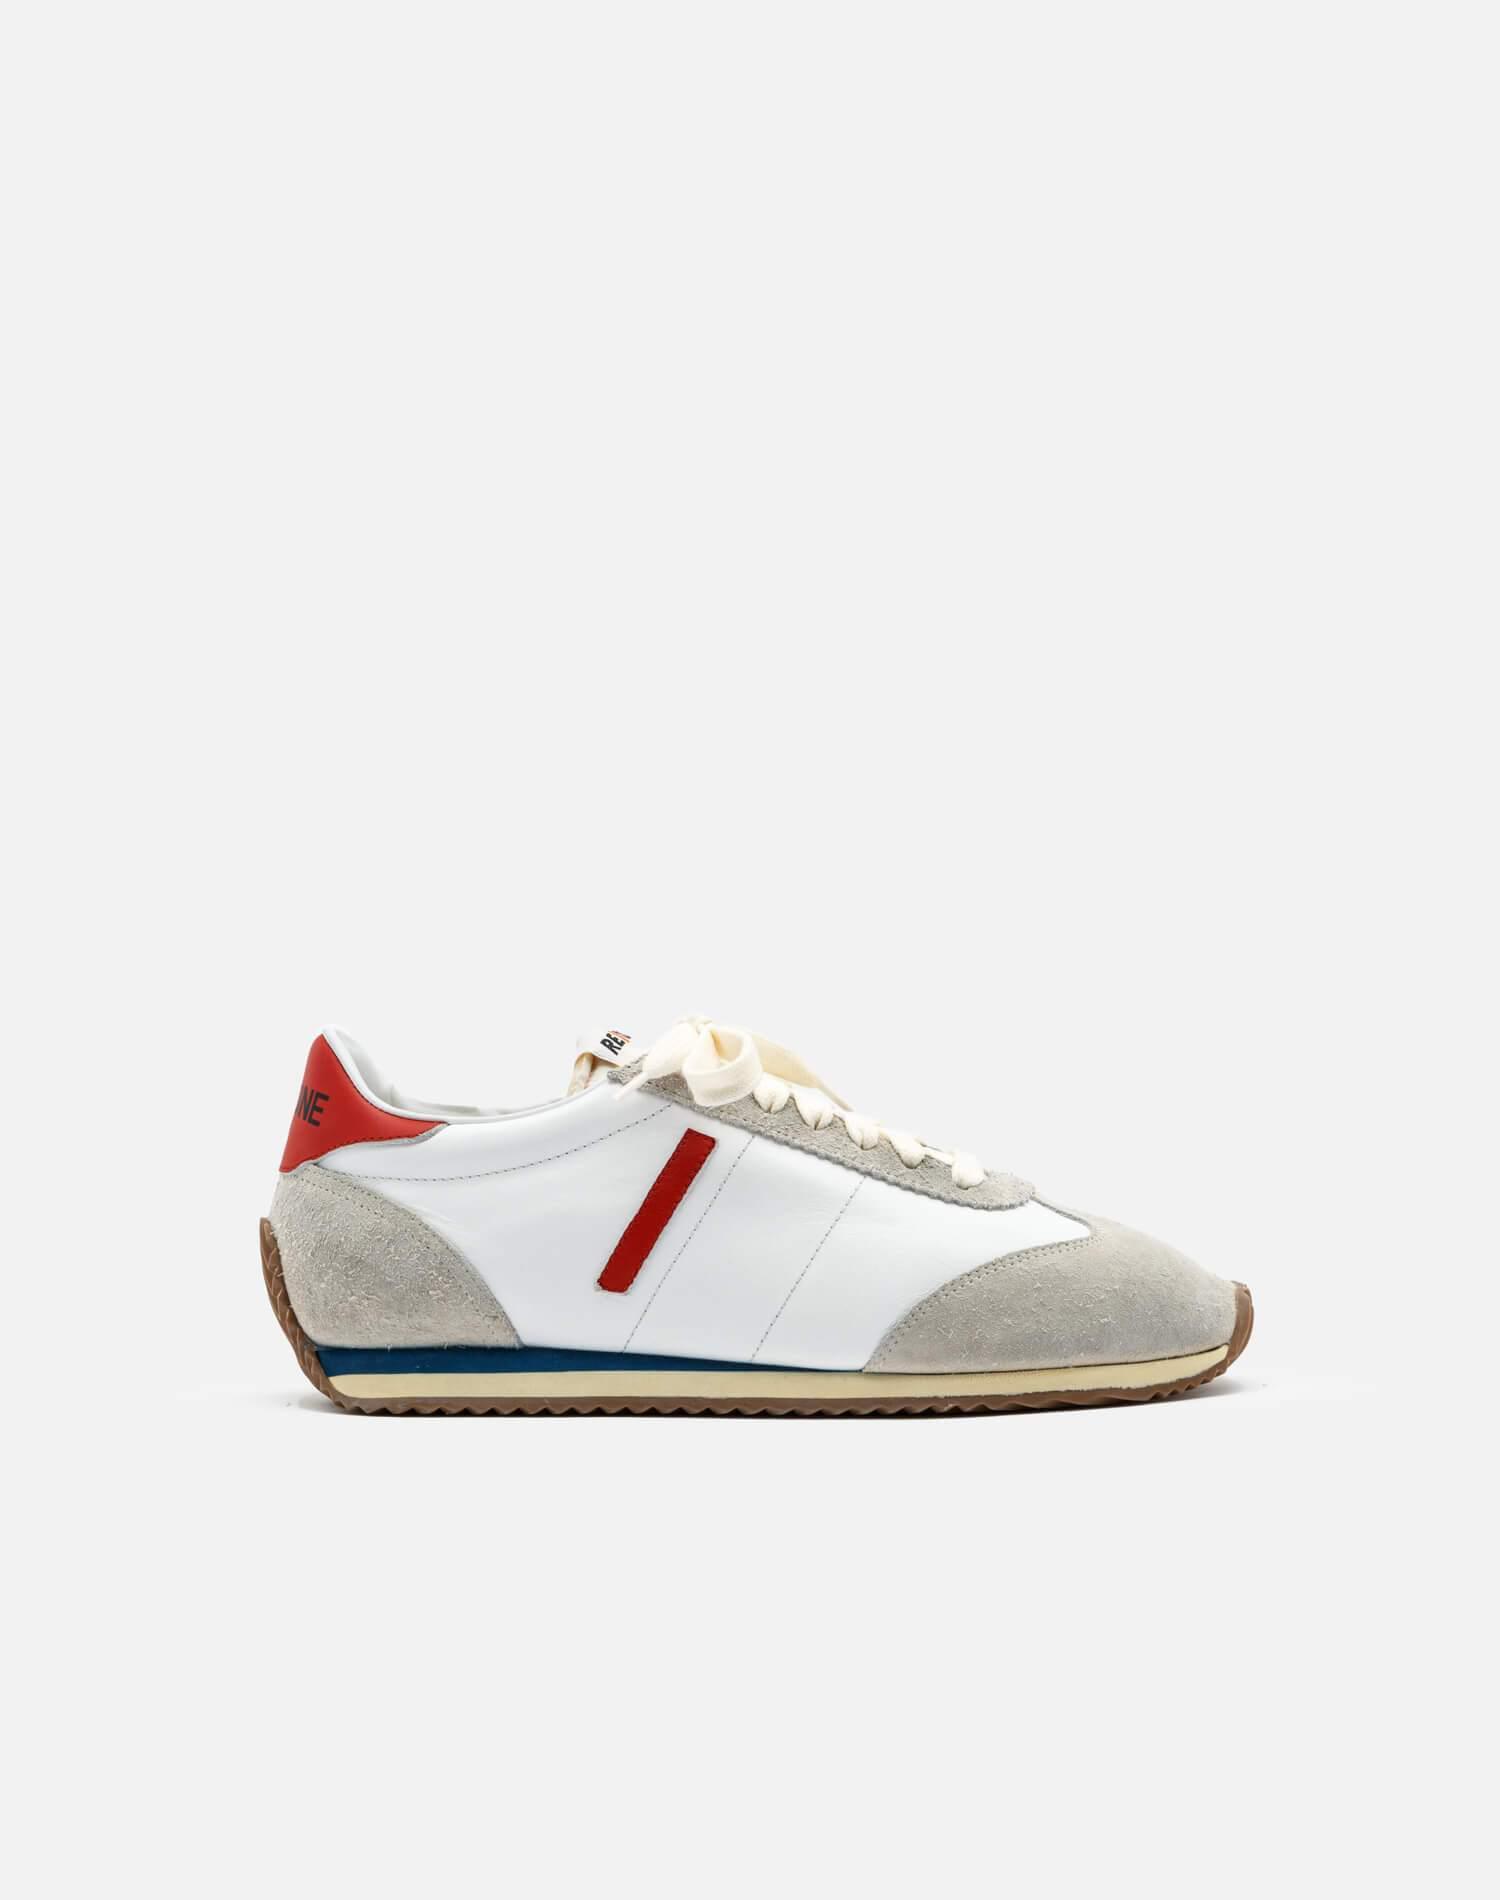 70s Runner Shoe - White with Red